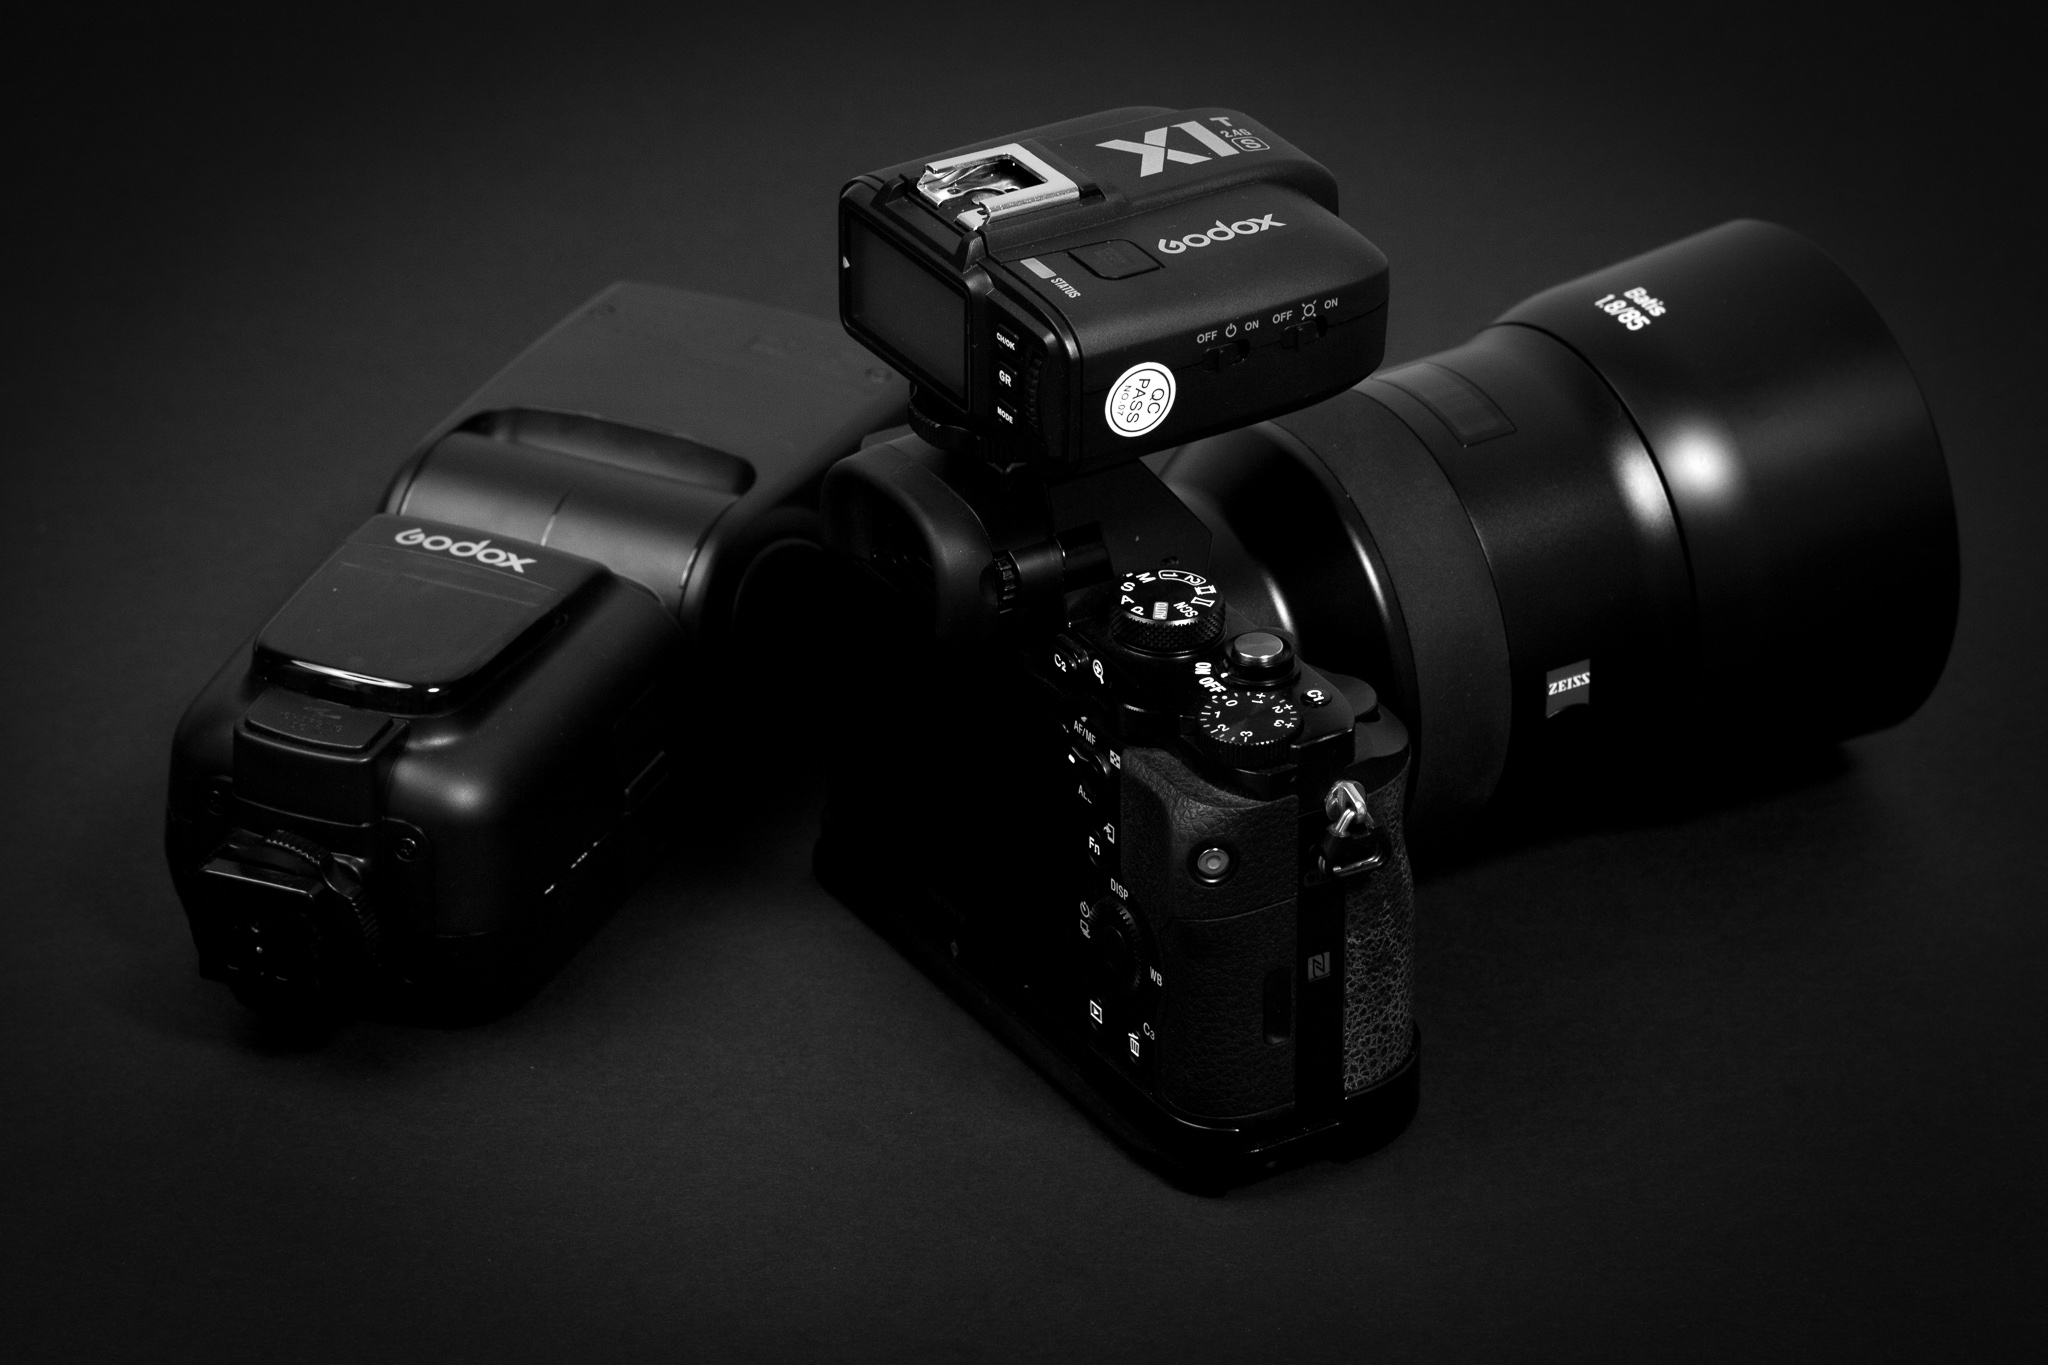 The Godox TT685 and XT1S trigger (yes that's mounted to a A7r, too lazy to retake photos